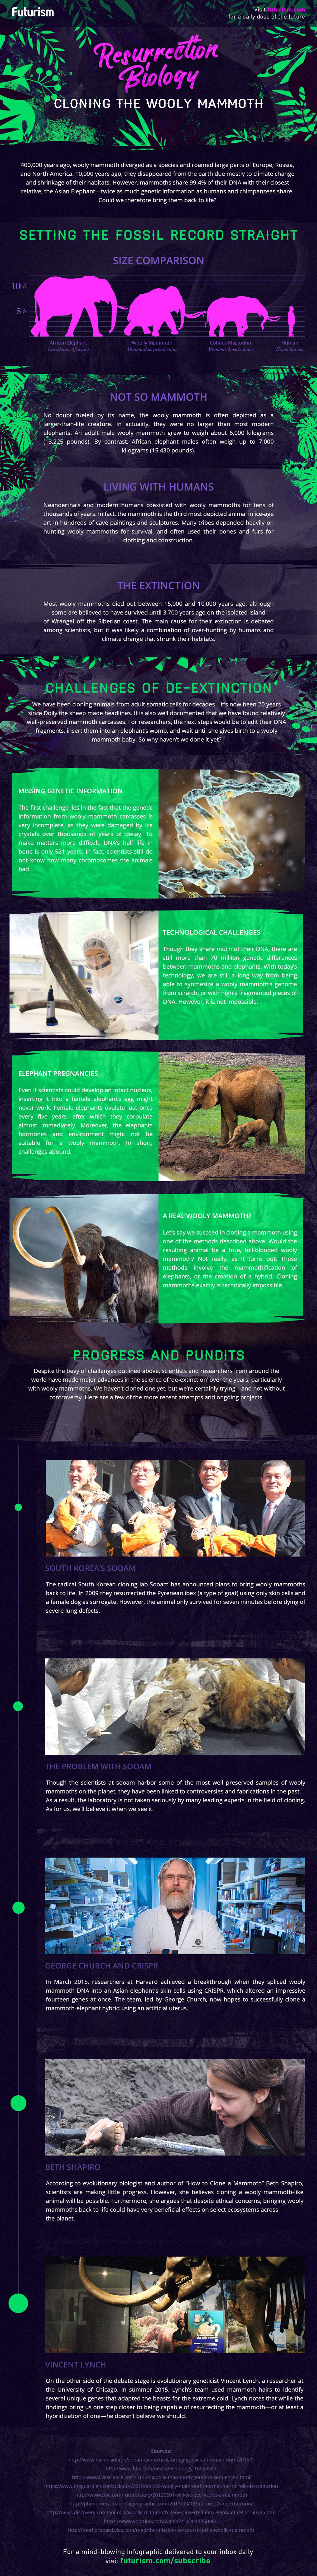 Resurrection Biology Cloning Woolly Mammoth infographic